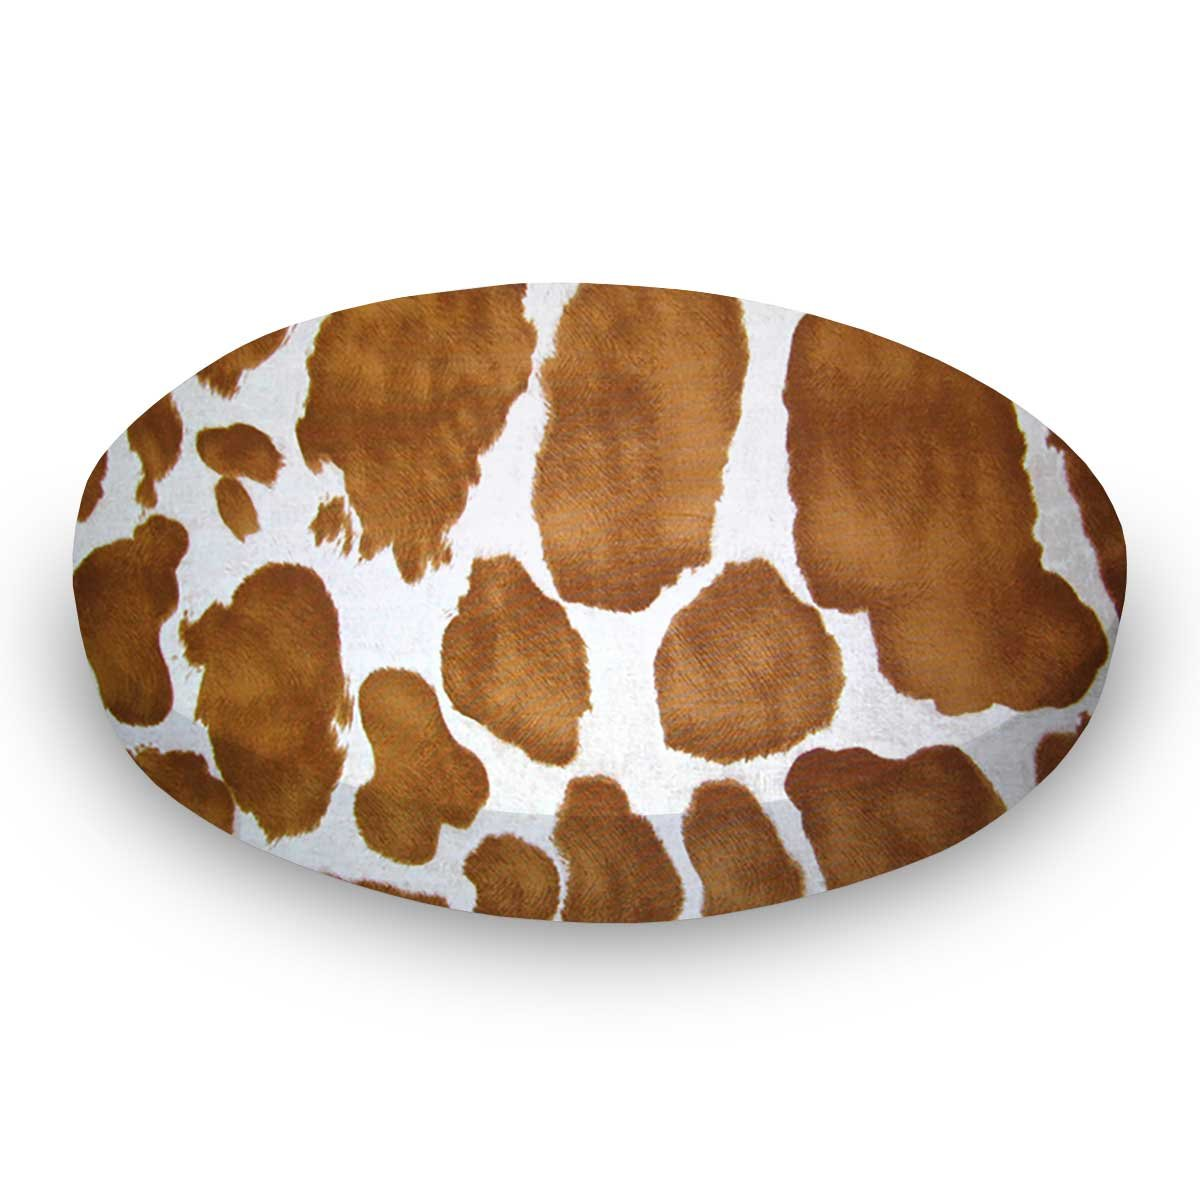 SheetWorld Fitted Oval (Stokke Mini) - Brown Cow - Made In USA